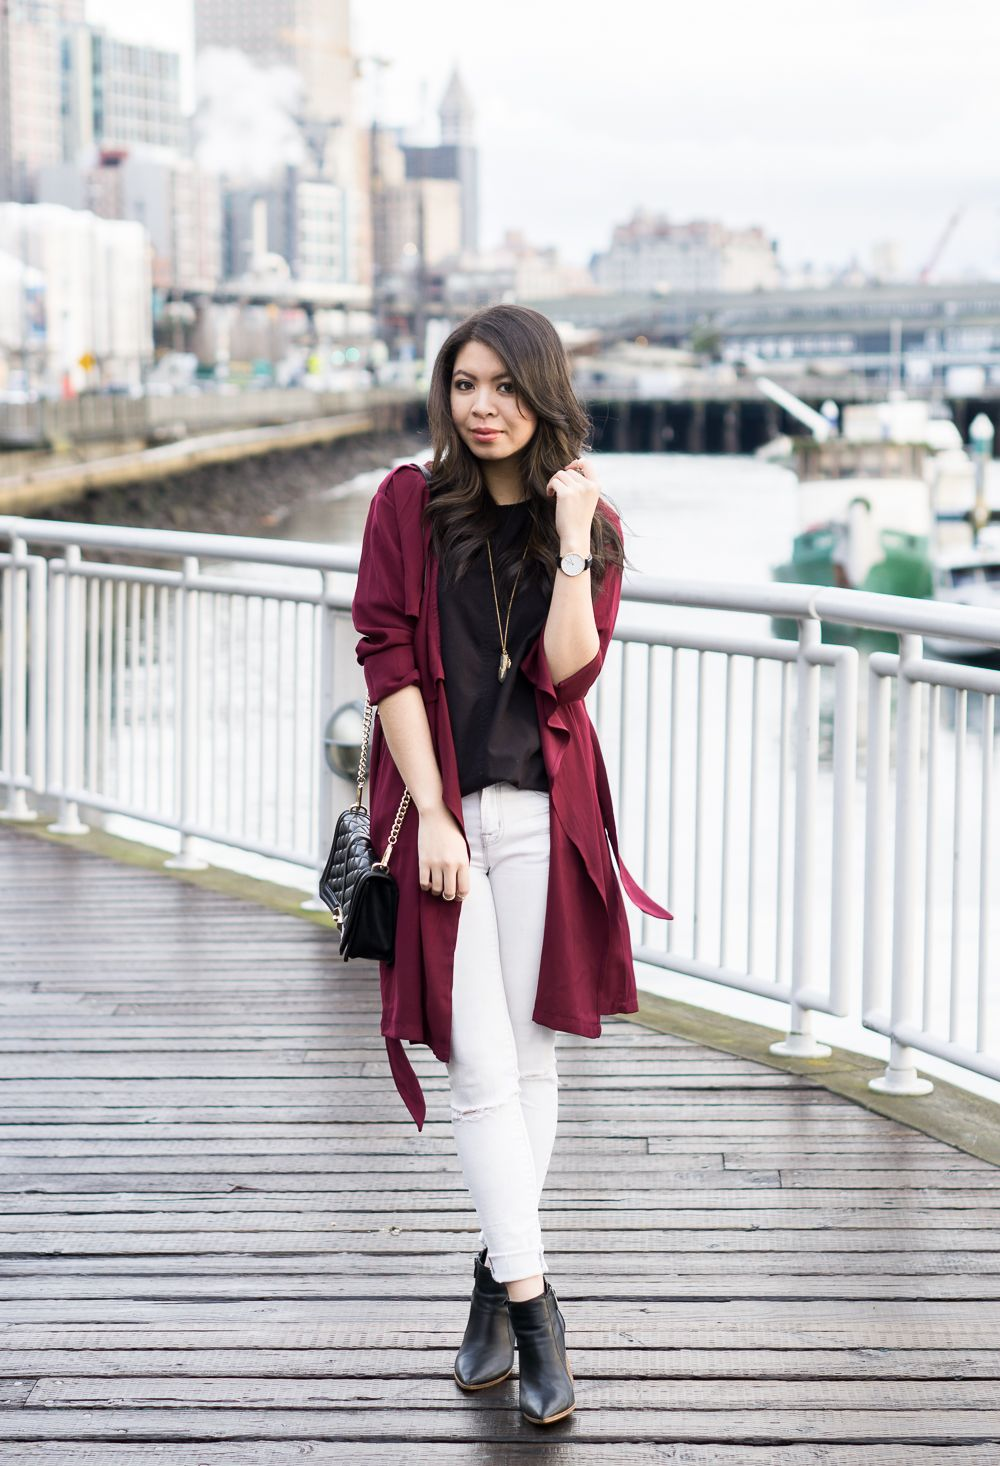 865241a8b9 shein burgundy trench coat, street style, casual outfit Seattle Fashion,  Chic Outfits,